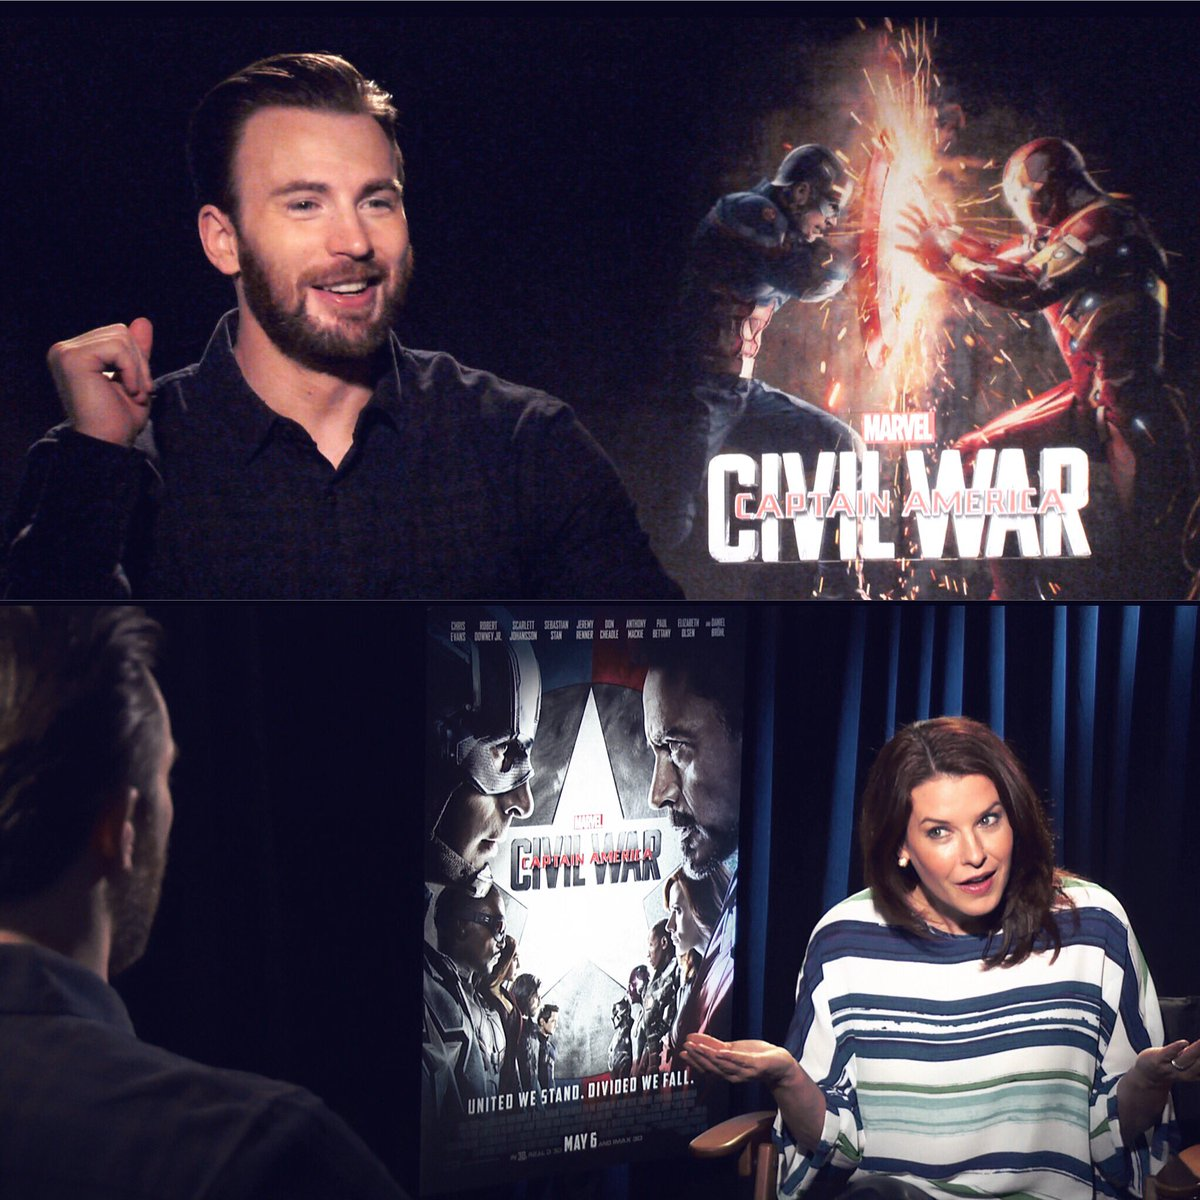 Just a moment with @ChrisEvans and I #nbd #CaptainAmericaCivilWar #TeamCap https://t.co/PyHTsw6sy6